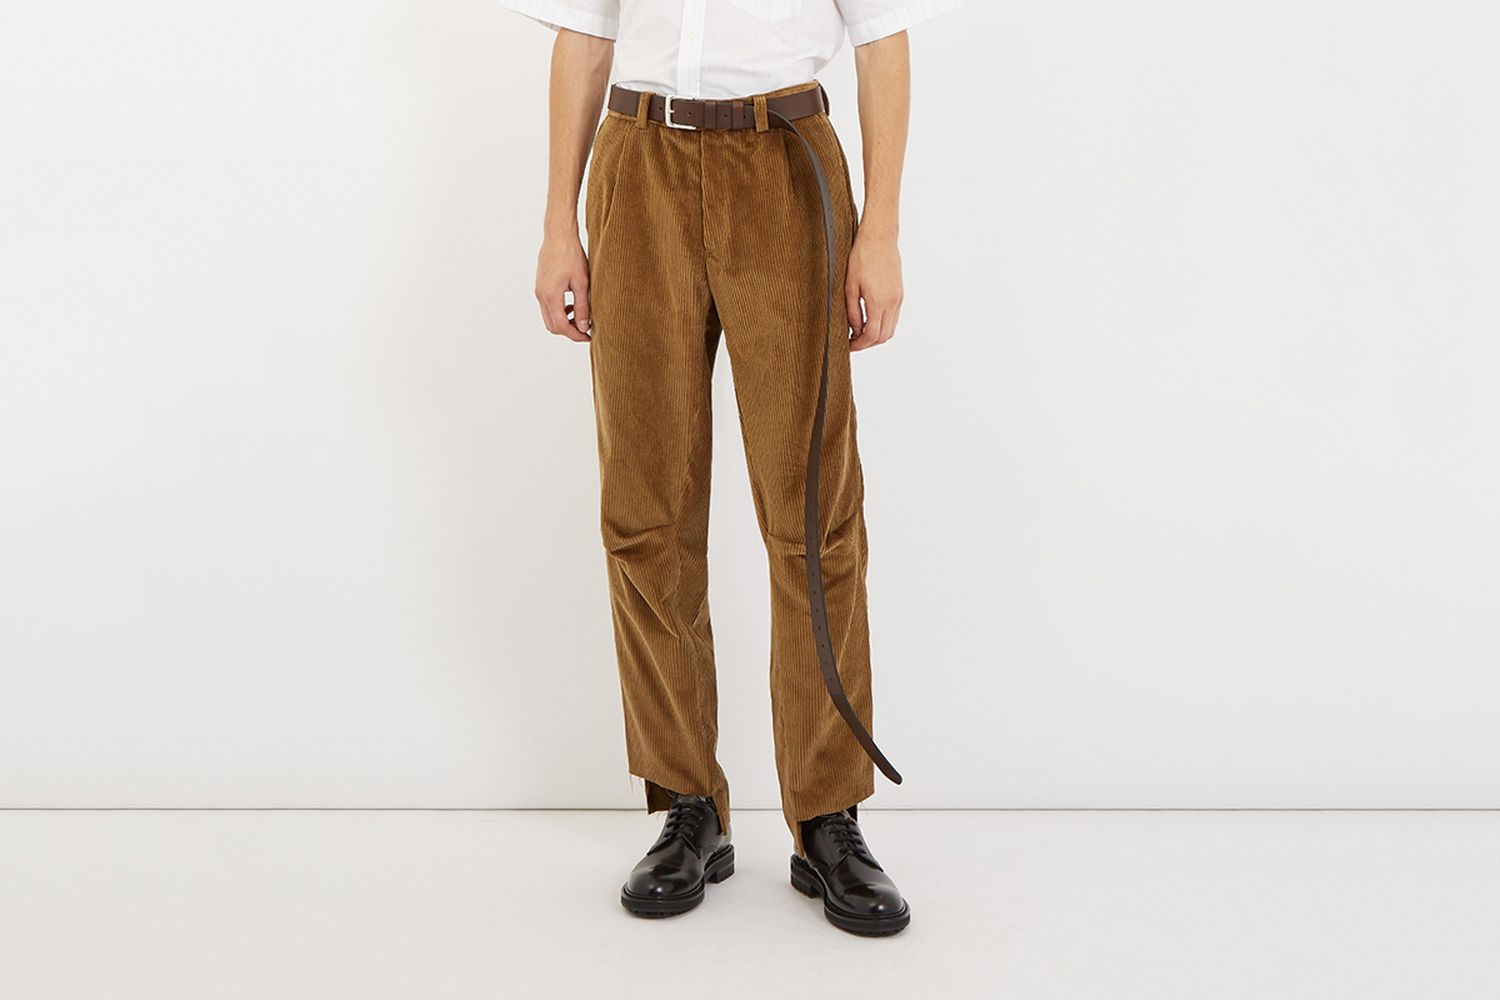 Darted-Knee Corduroy Trousers